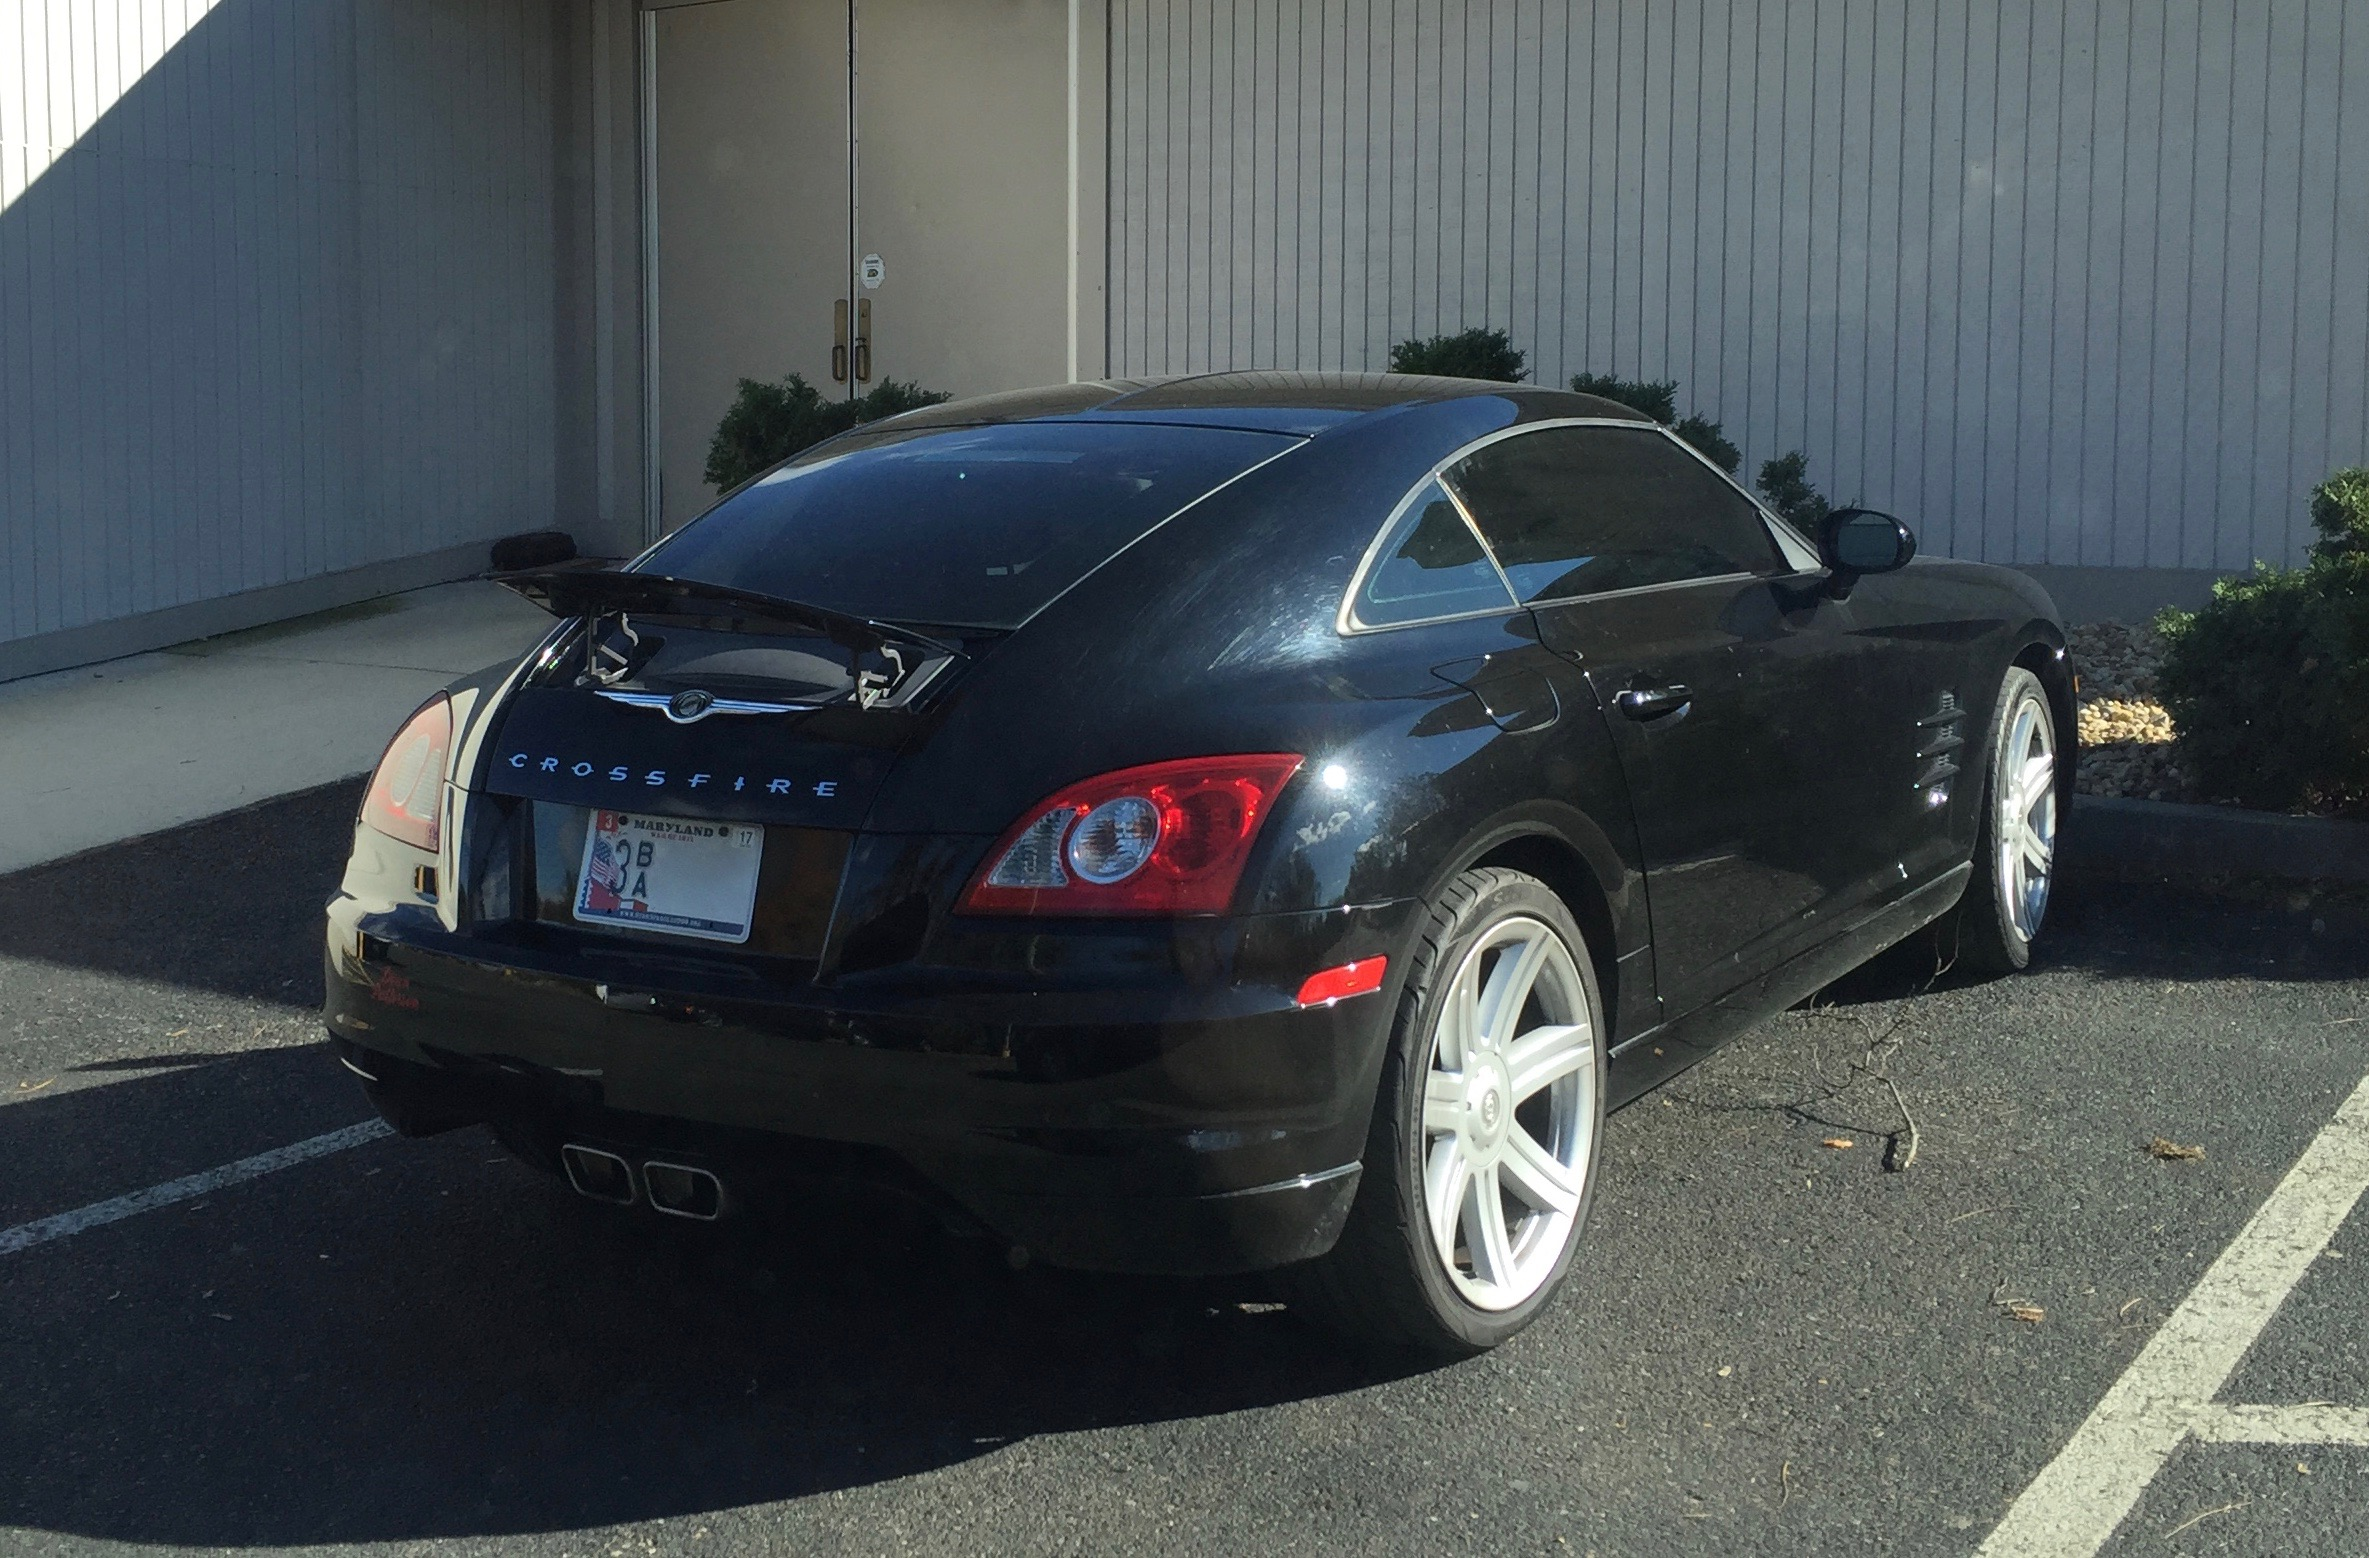 File:Chrysler Crossfire Fastback In Hagerstown MD